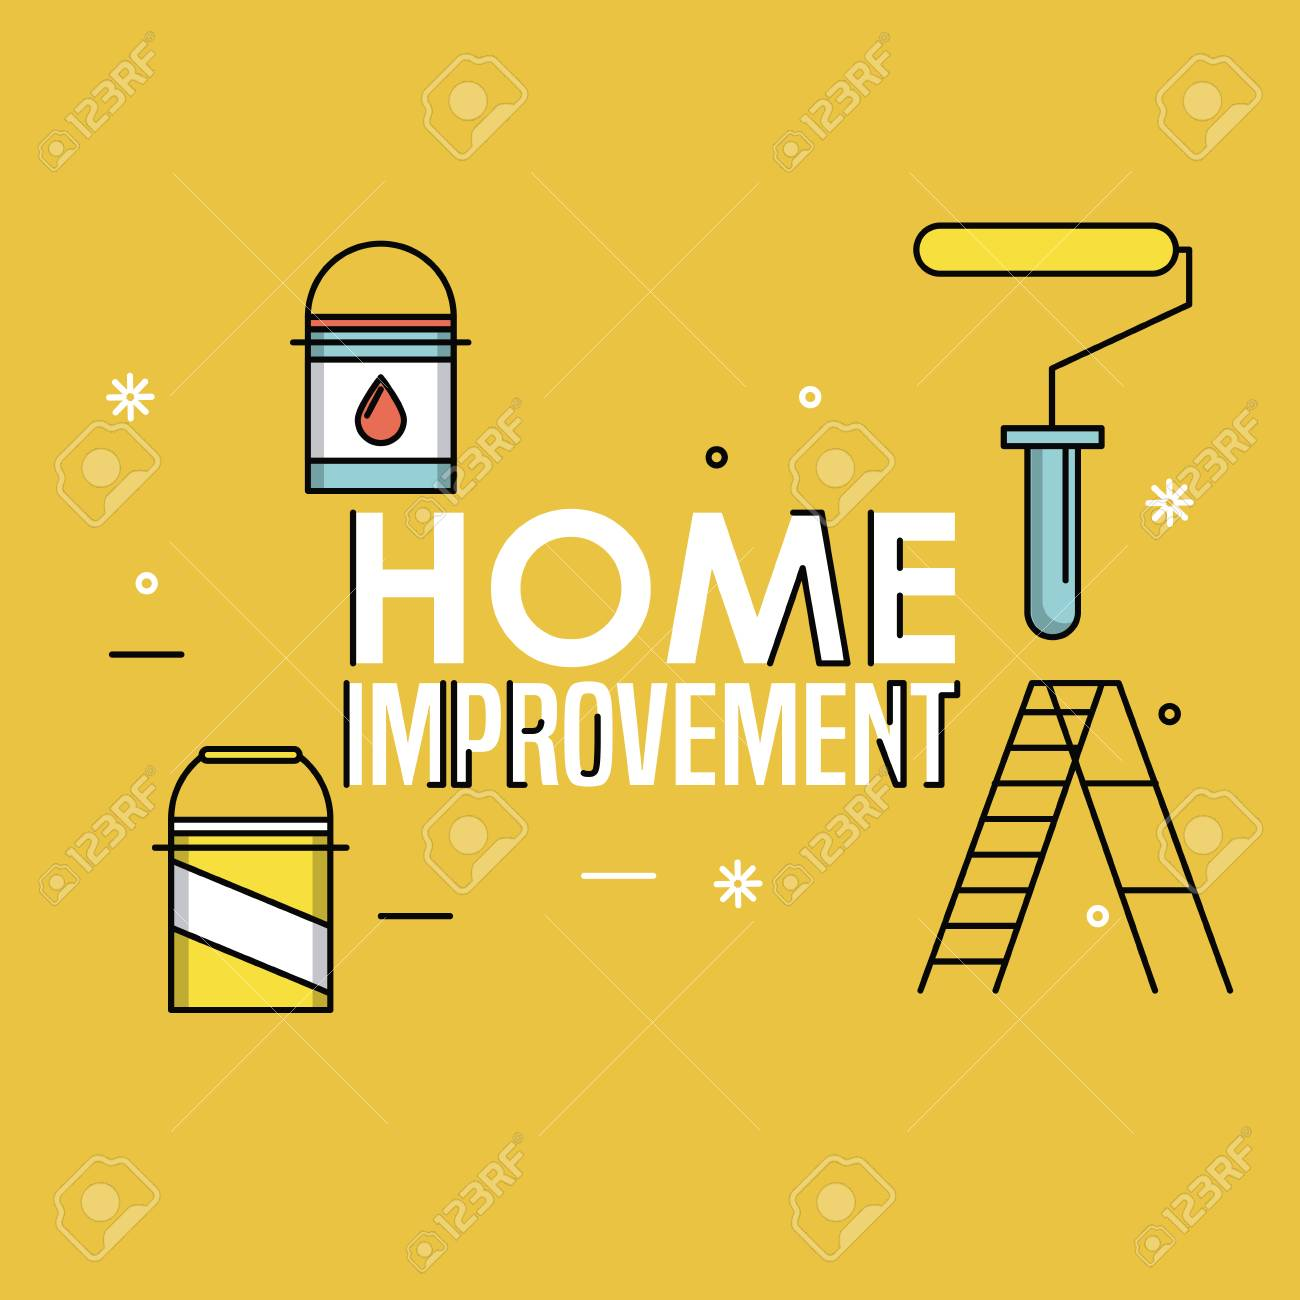 Home Improvement And Construction Tools Concept Vector Illustration Royalty Free Cliparts Vectors And Stock Illustration Image 122790578